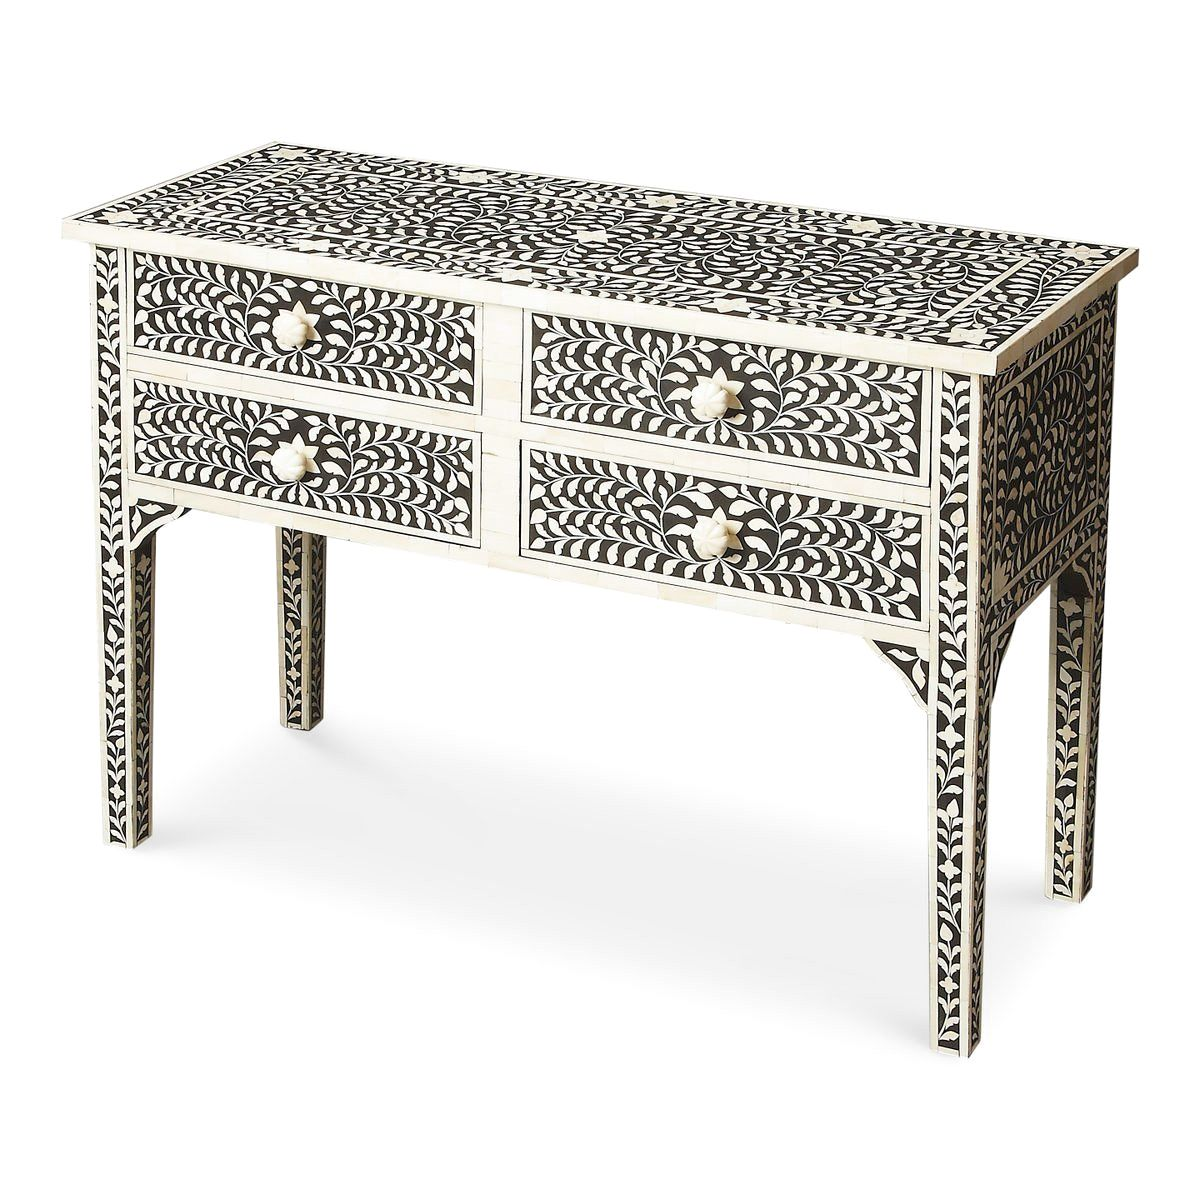 Bone Inlay Furniture At Contemporary Furniture Warehouse | Accent Chairs,  Benches, Boxes, Chairside Chests, Chests, Coffee Tables, Console Tables,  Mirrors, ...